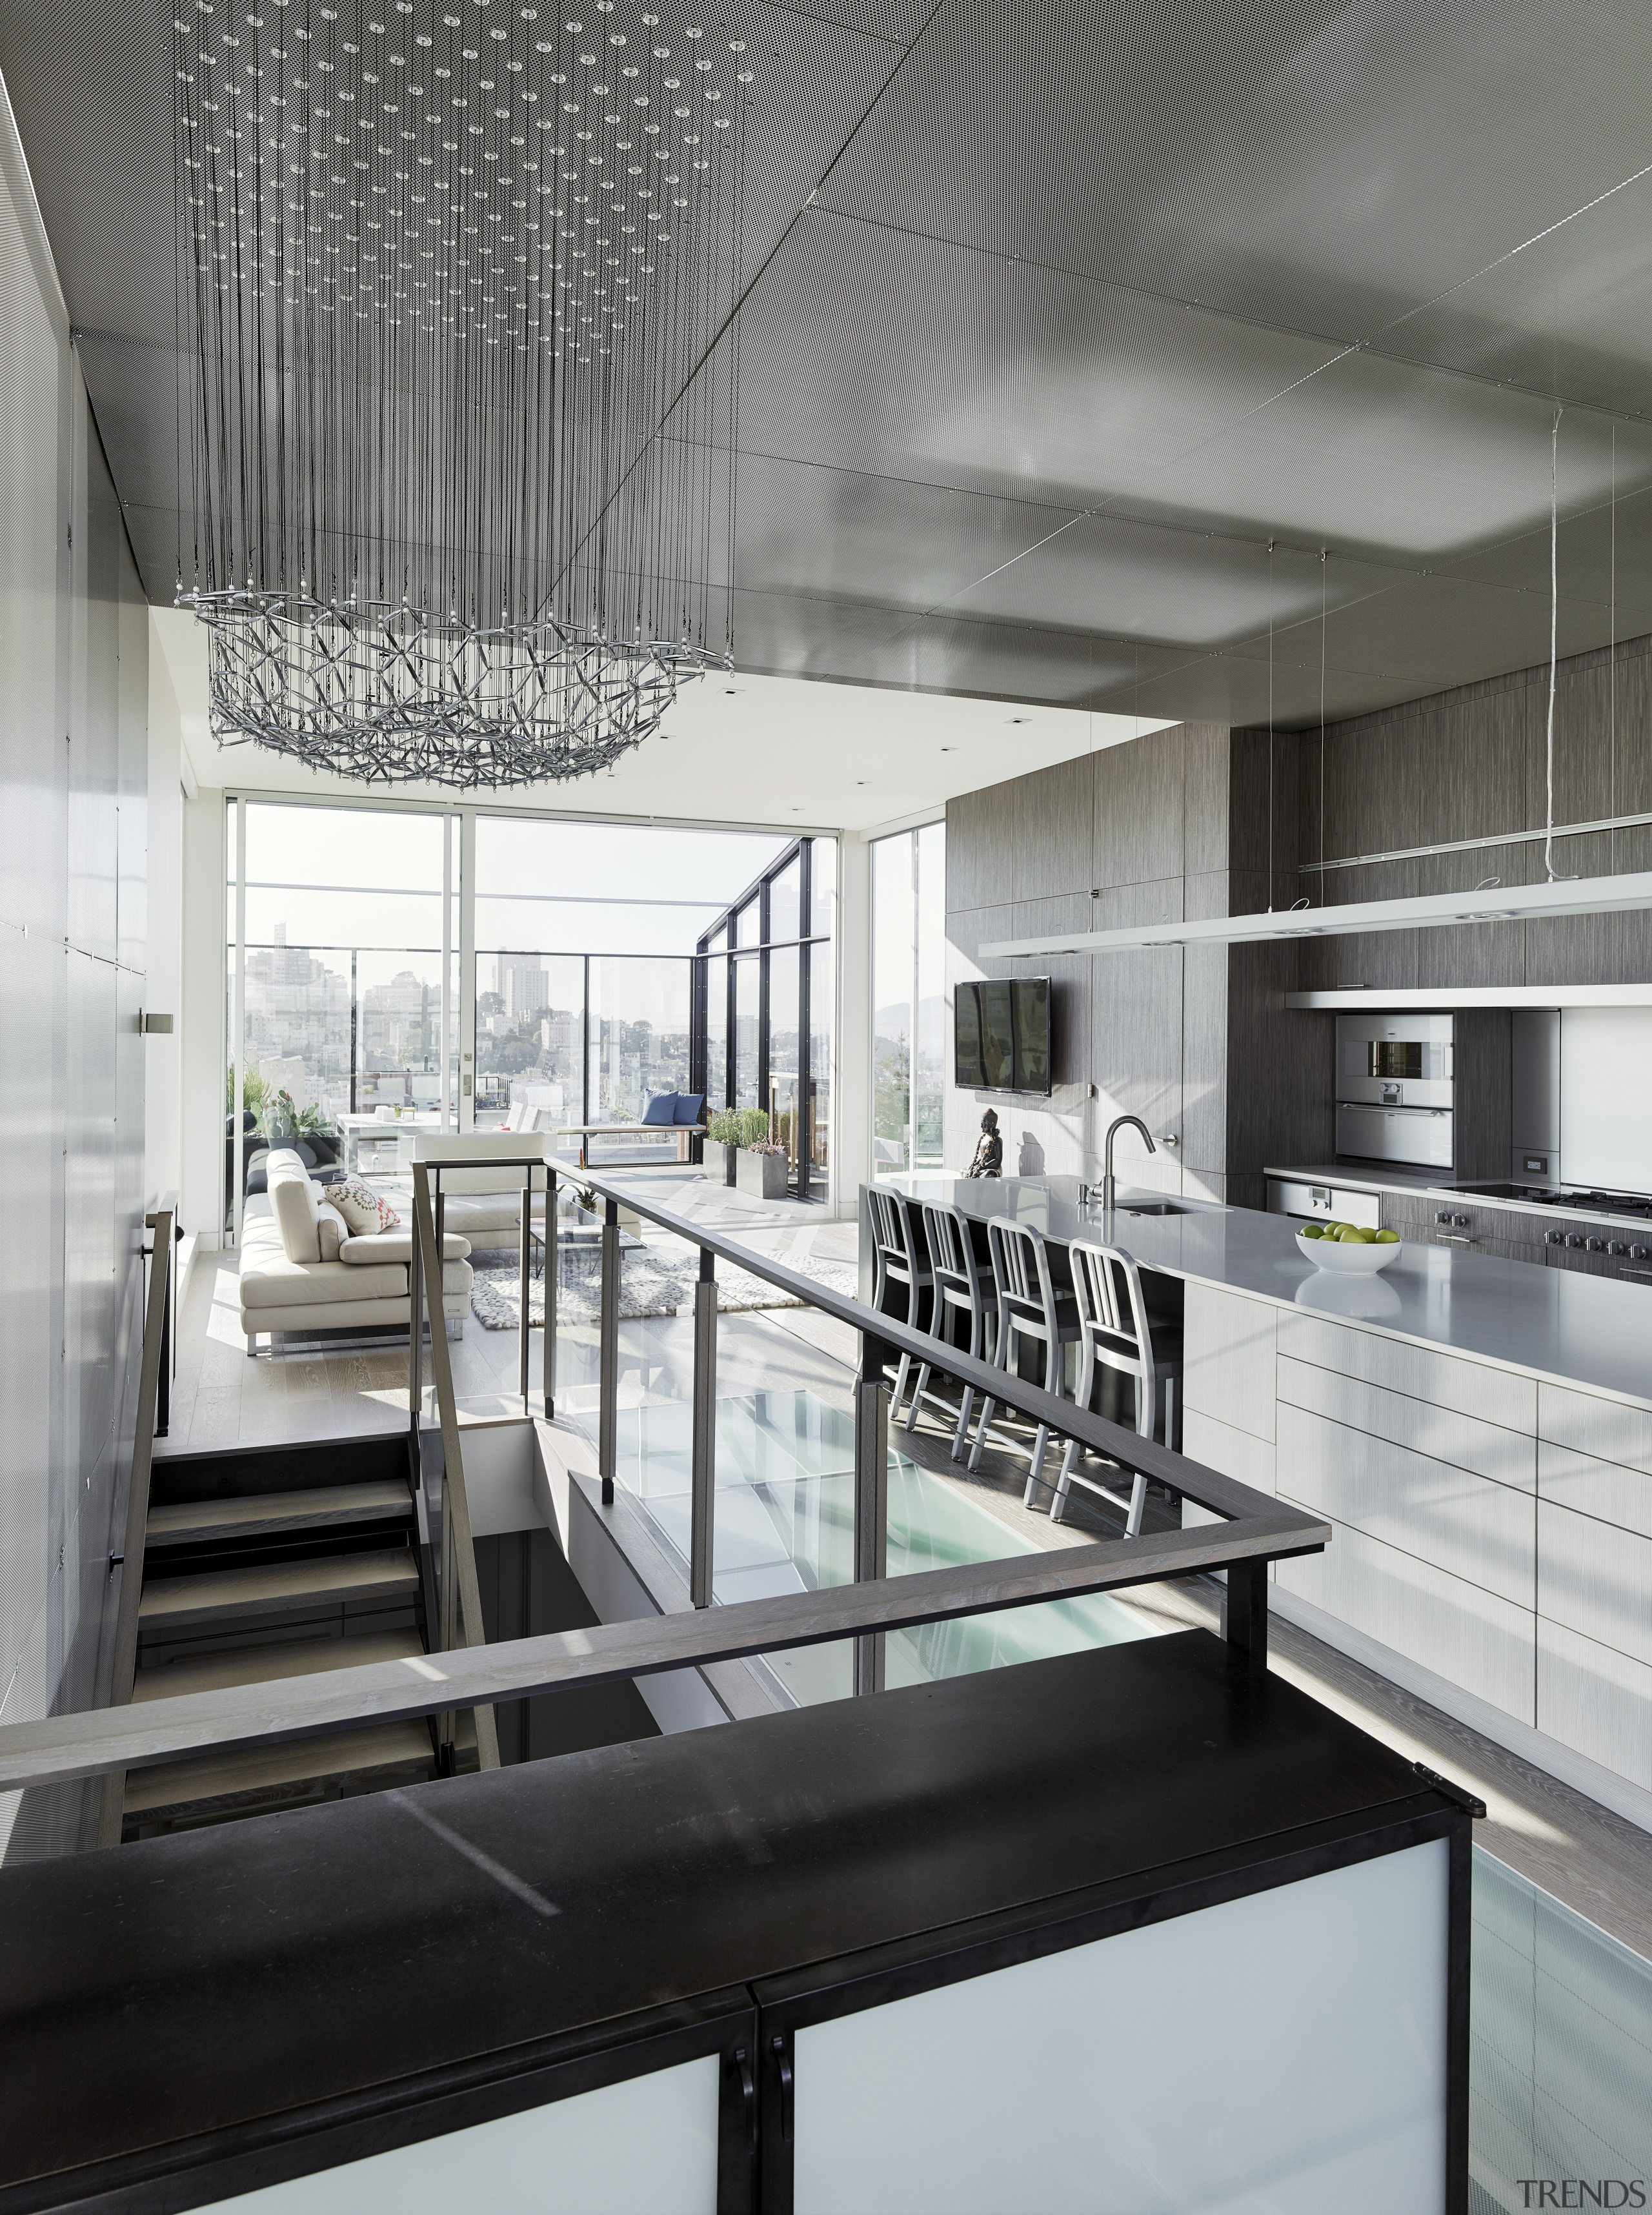 A custom kinetic sculpture by Reuben Margolin enlivens architecture, condominium, daylighting, house, interior design, kitchen, gray, black, white